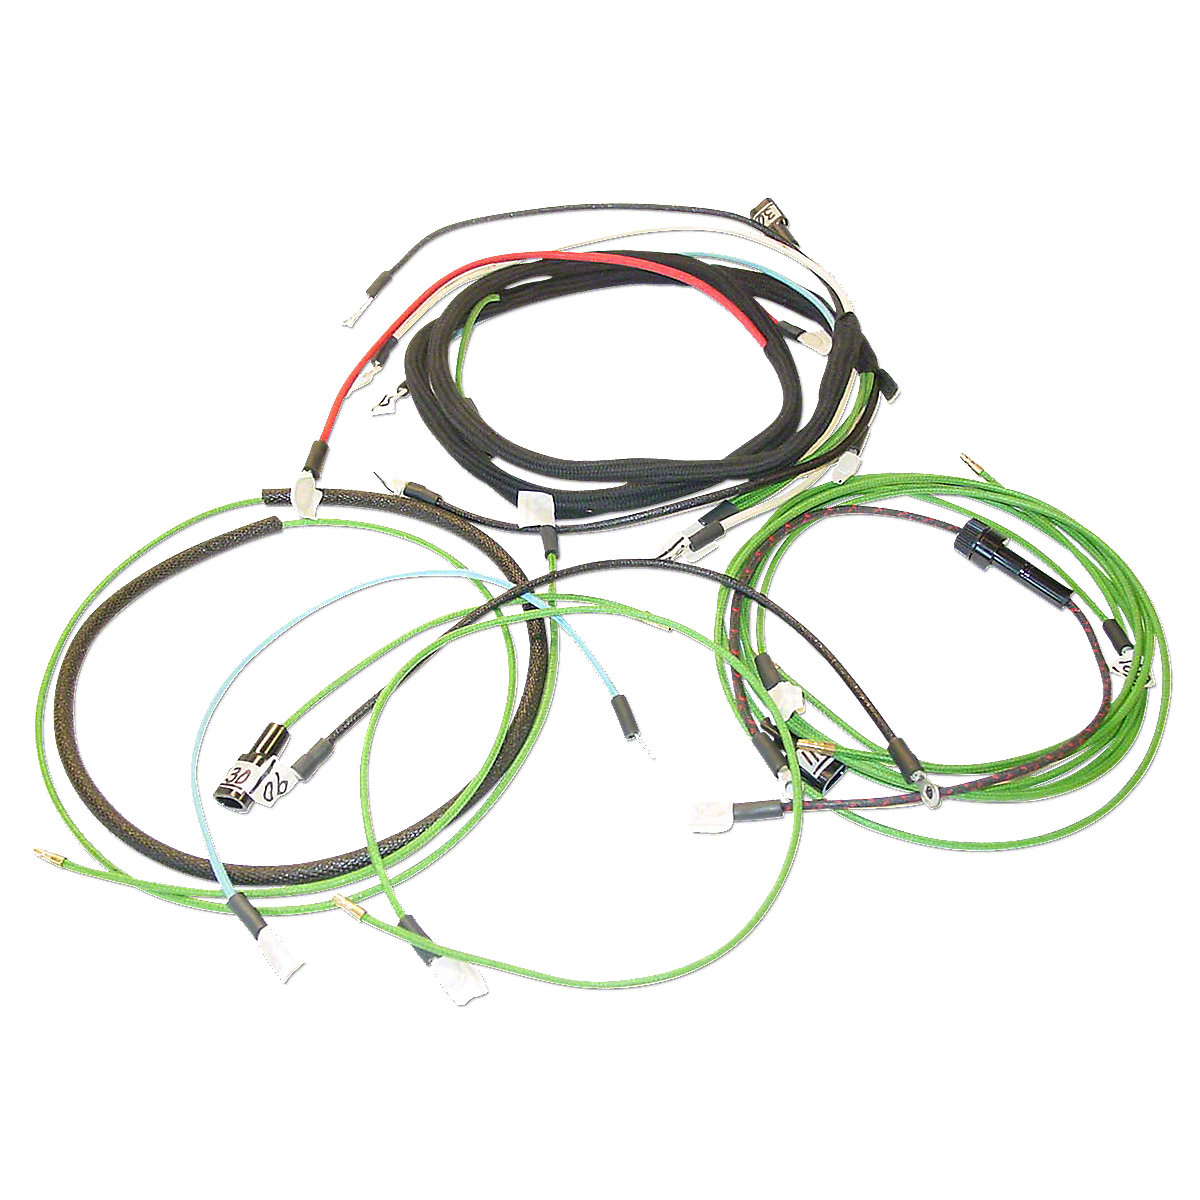 Jds818 Wiring Harness Ford 9n